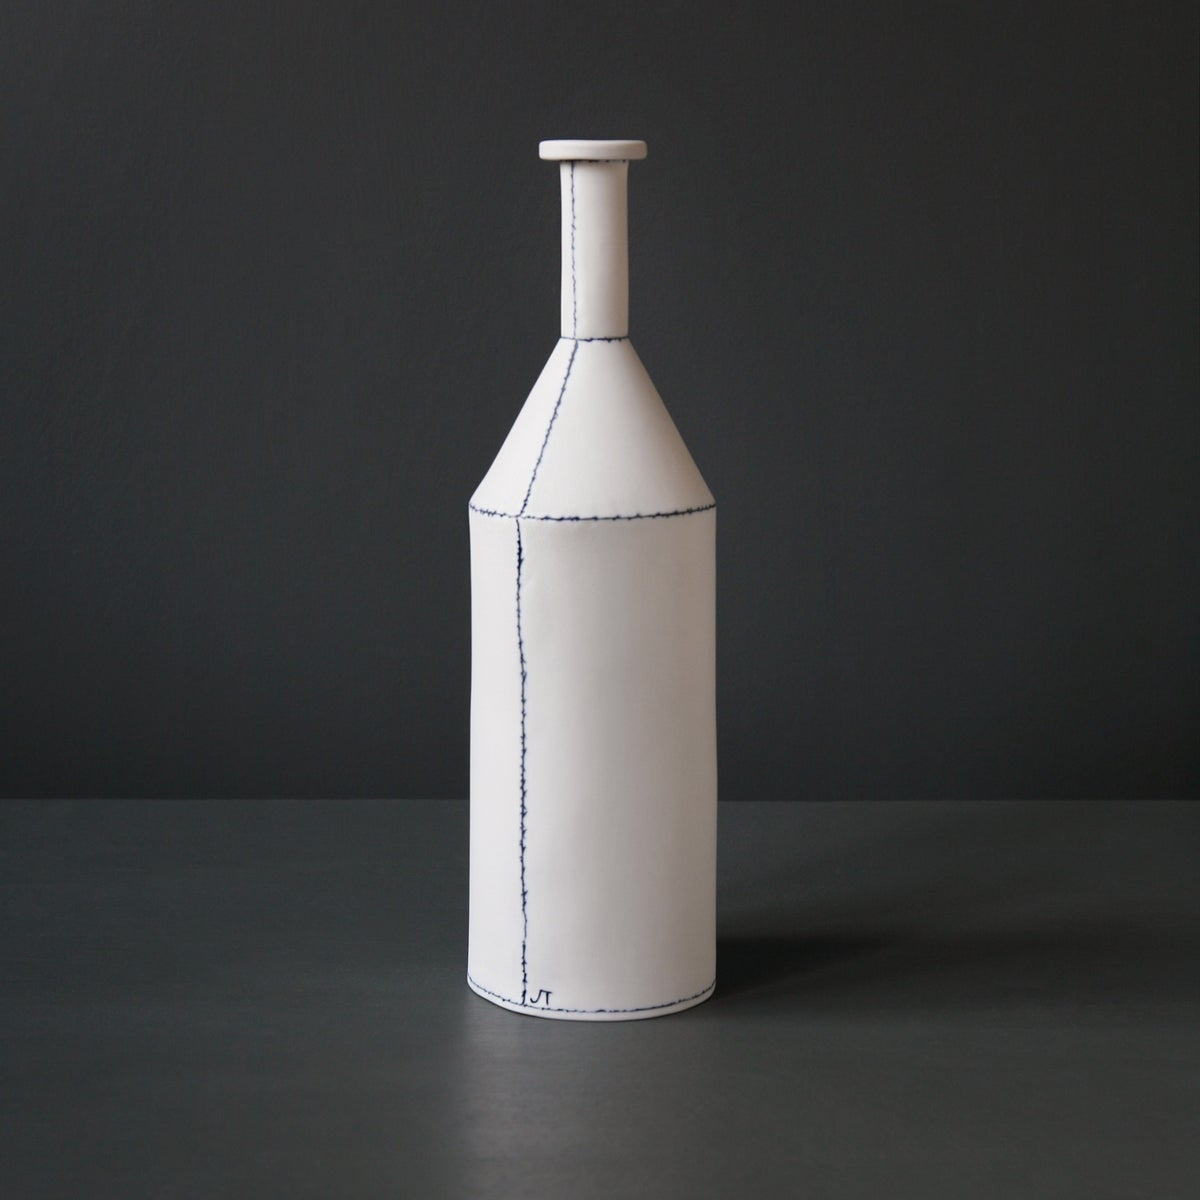 Image of Large 'Still Life' Bottle by Jessica Thorn.